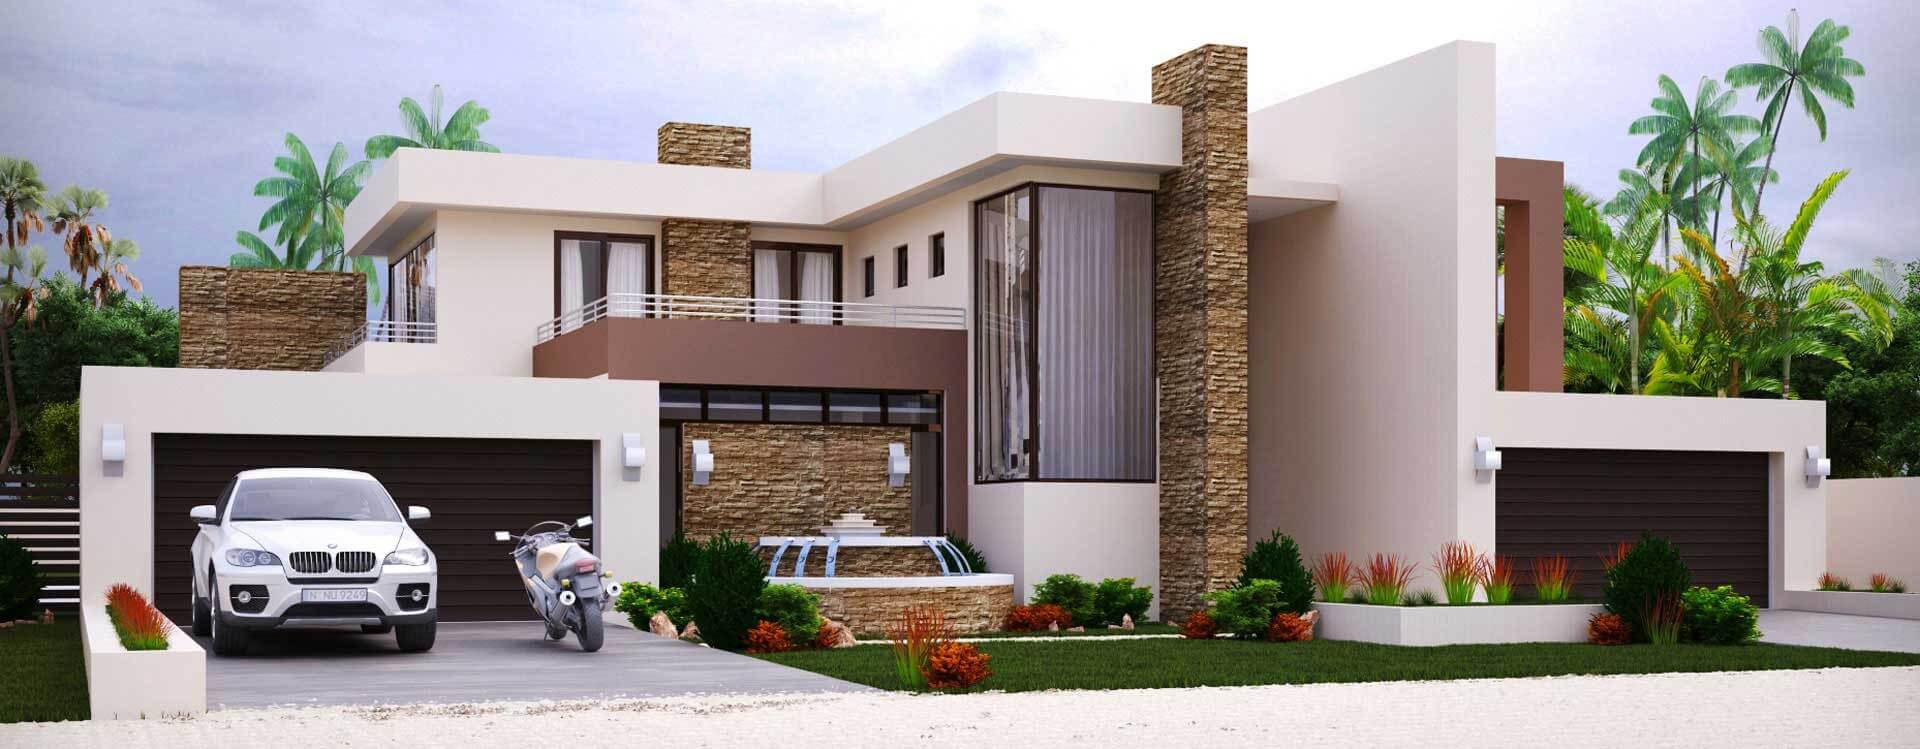 4 bedroom house designs south africa